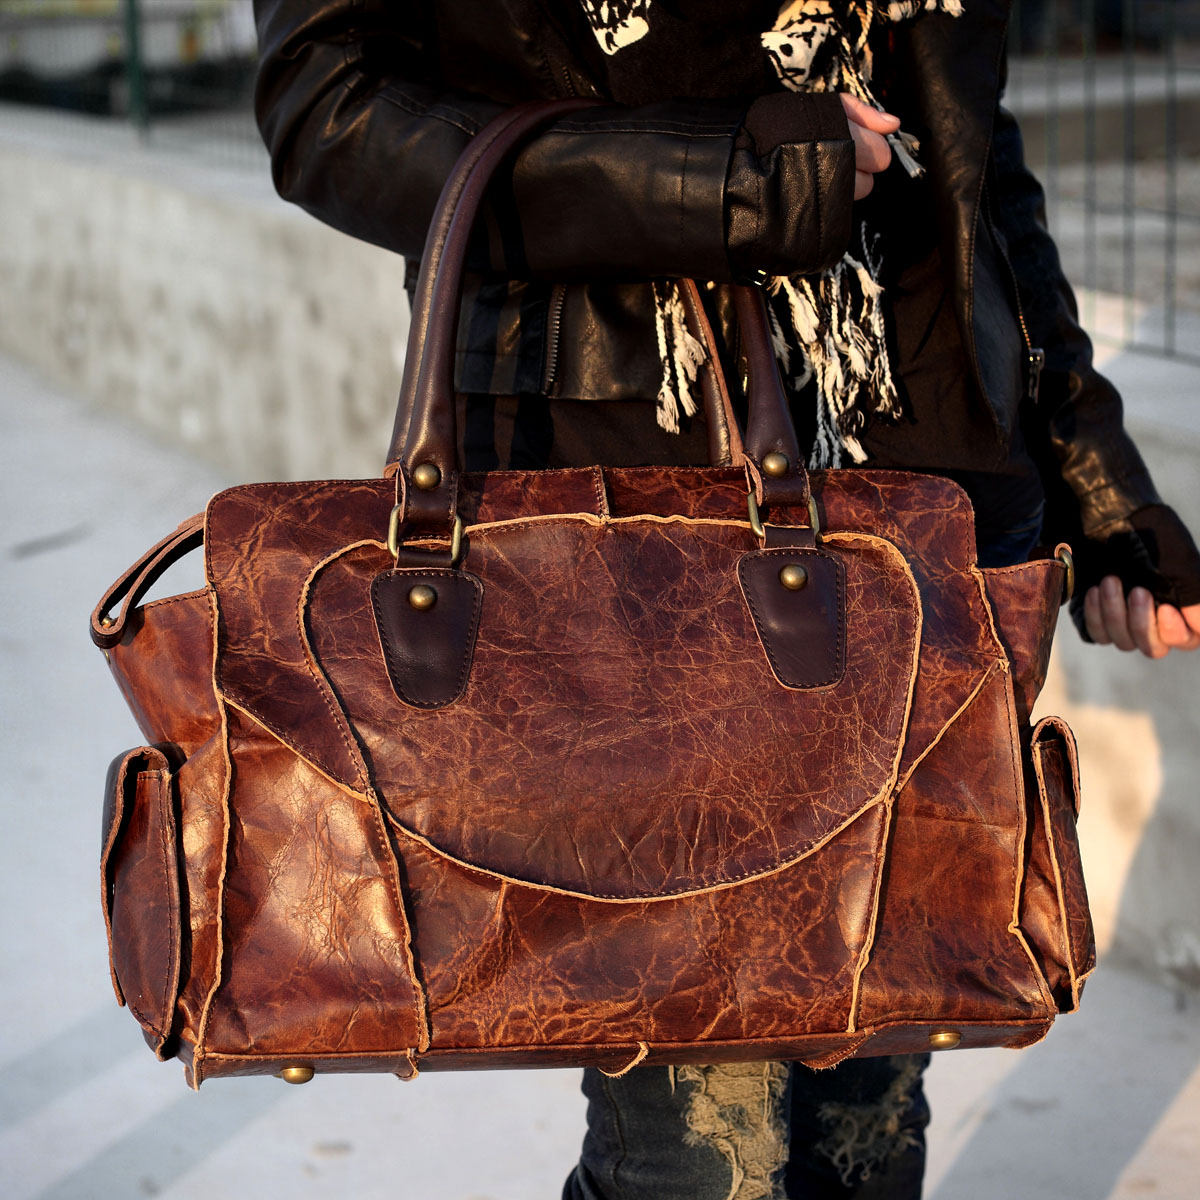 Vintage Handmade Antique Cow Leather Women's Handbag / Purse / Shoulder Bag / Messenger Bag #m11 (30278416) photo